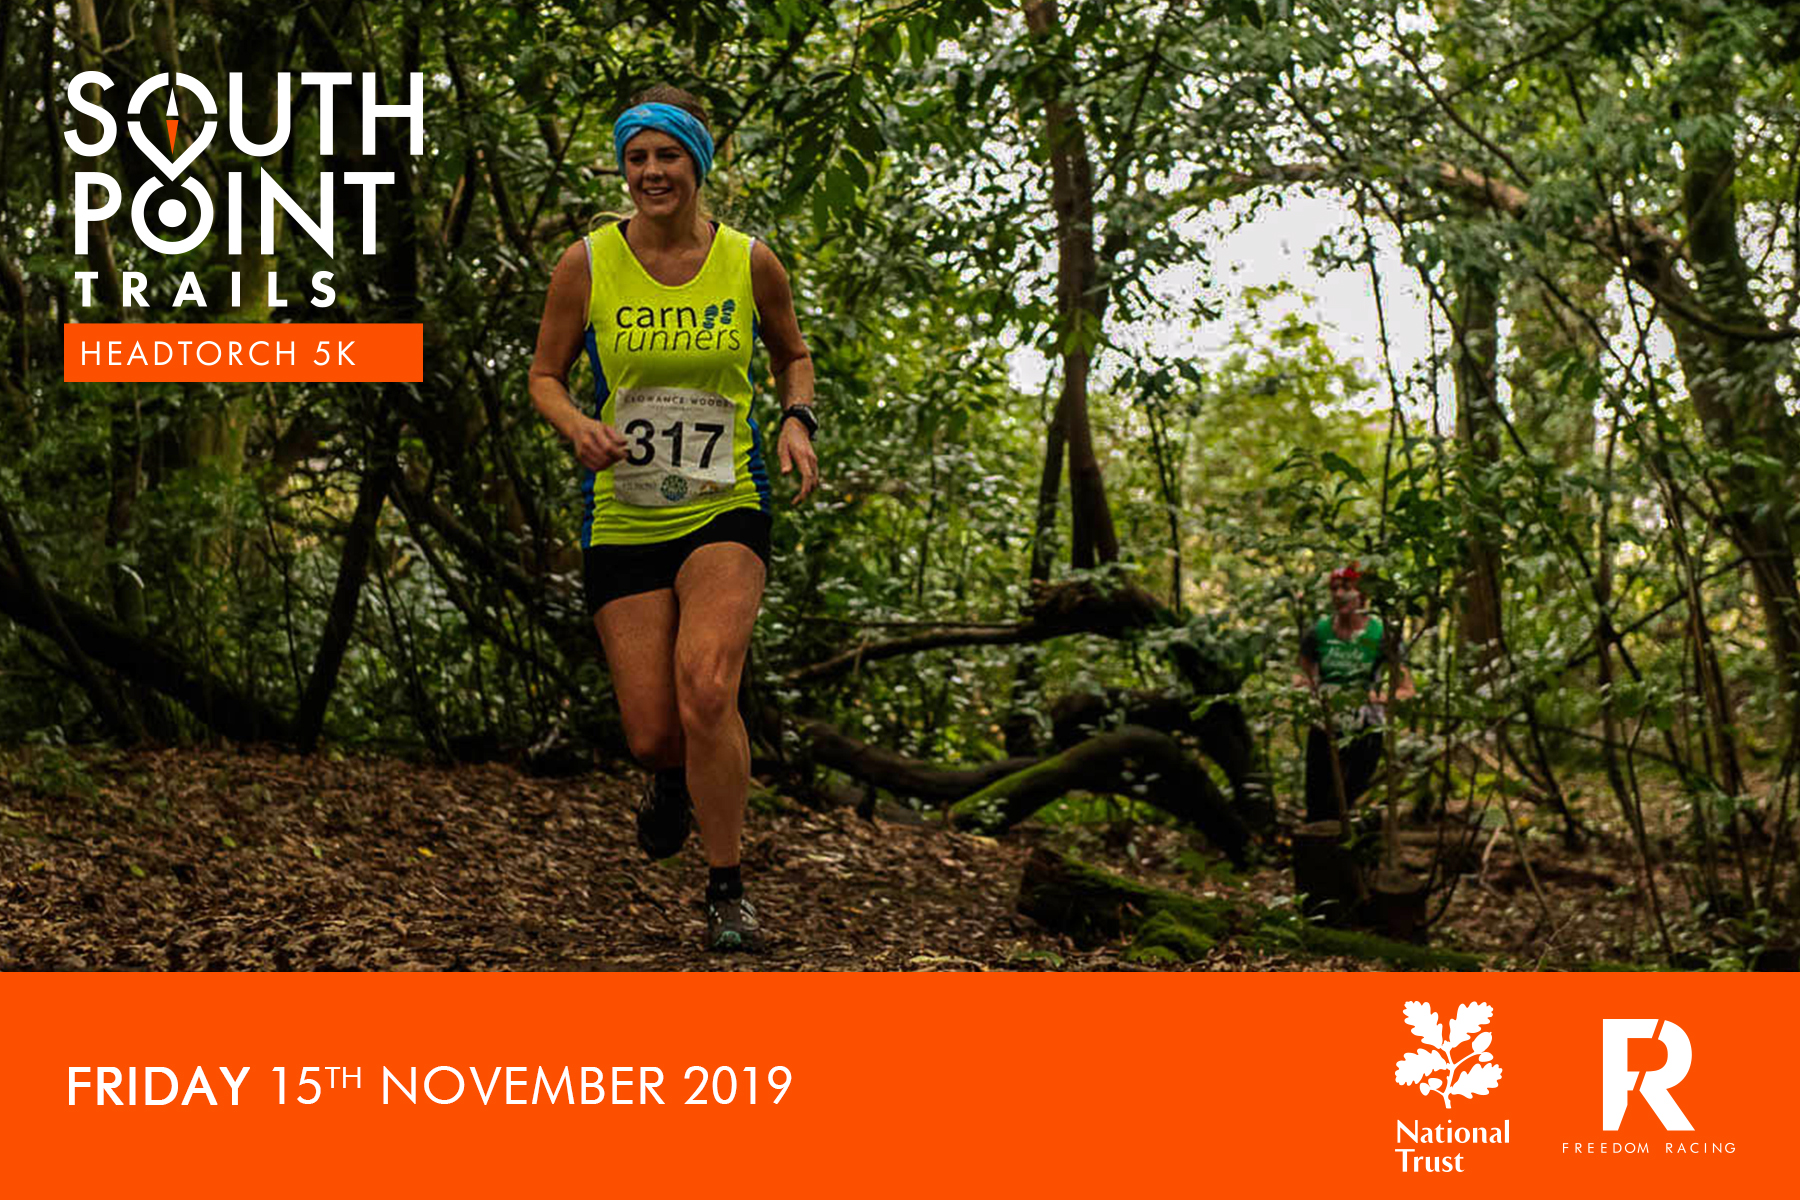 south-point-trails-image-5k-headtorch-3.jpg